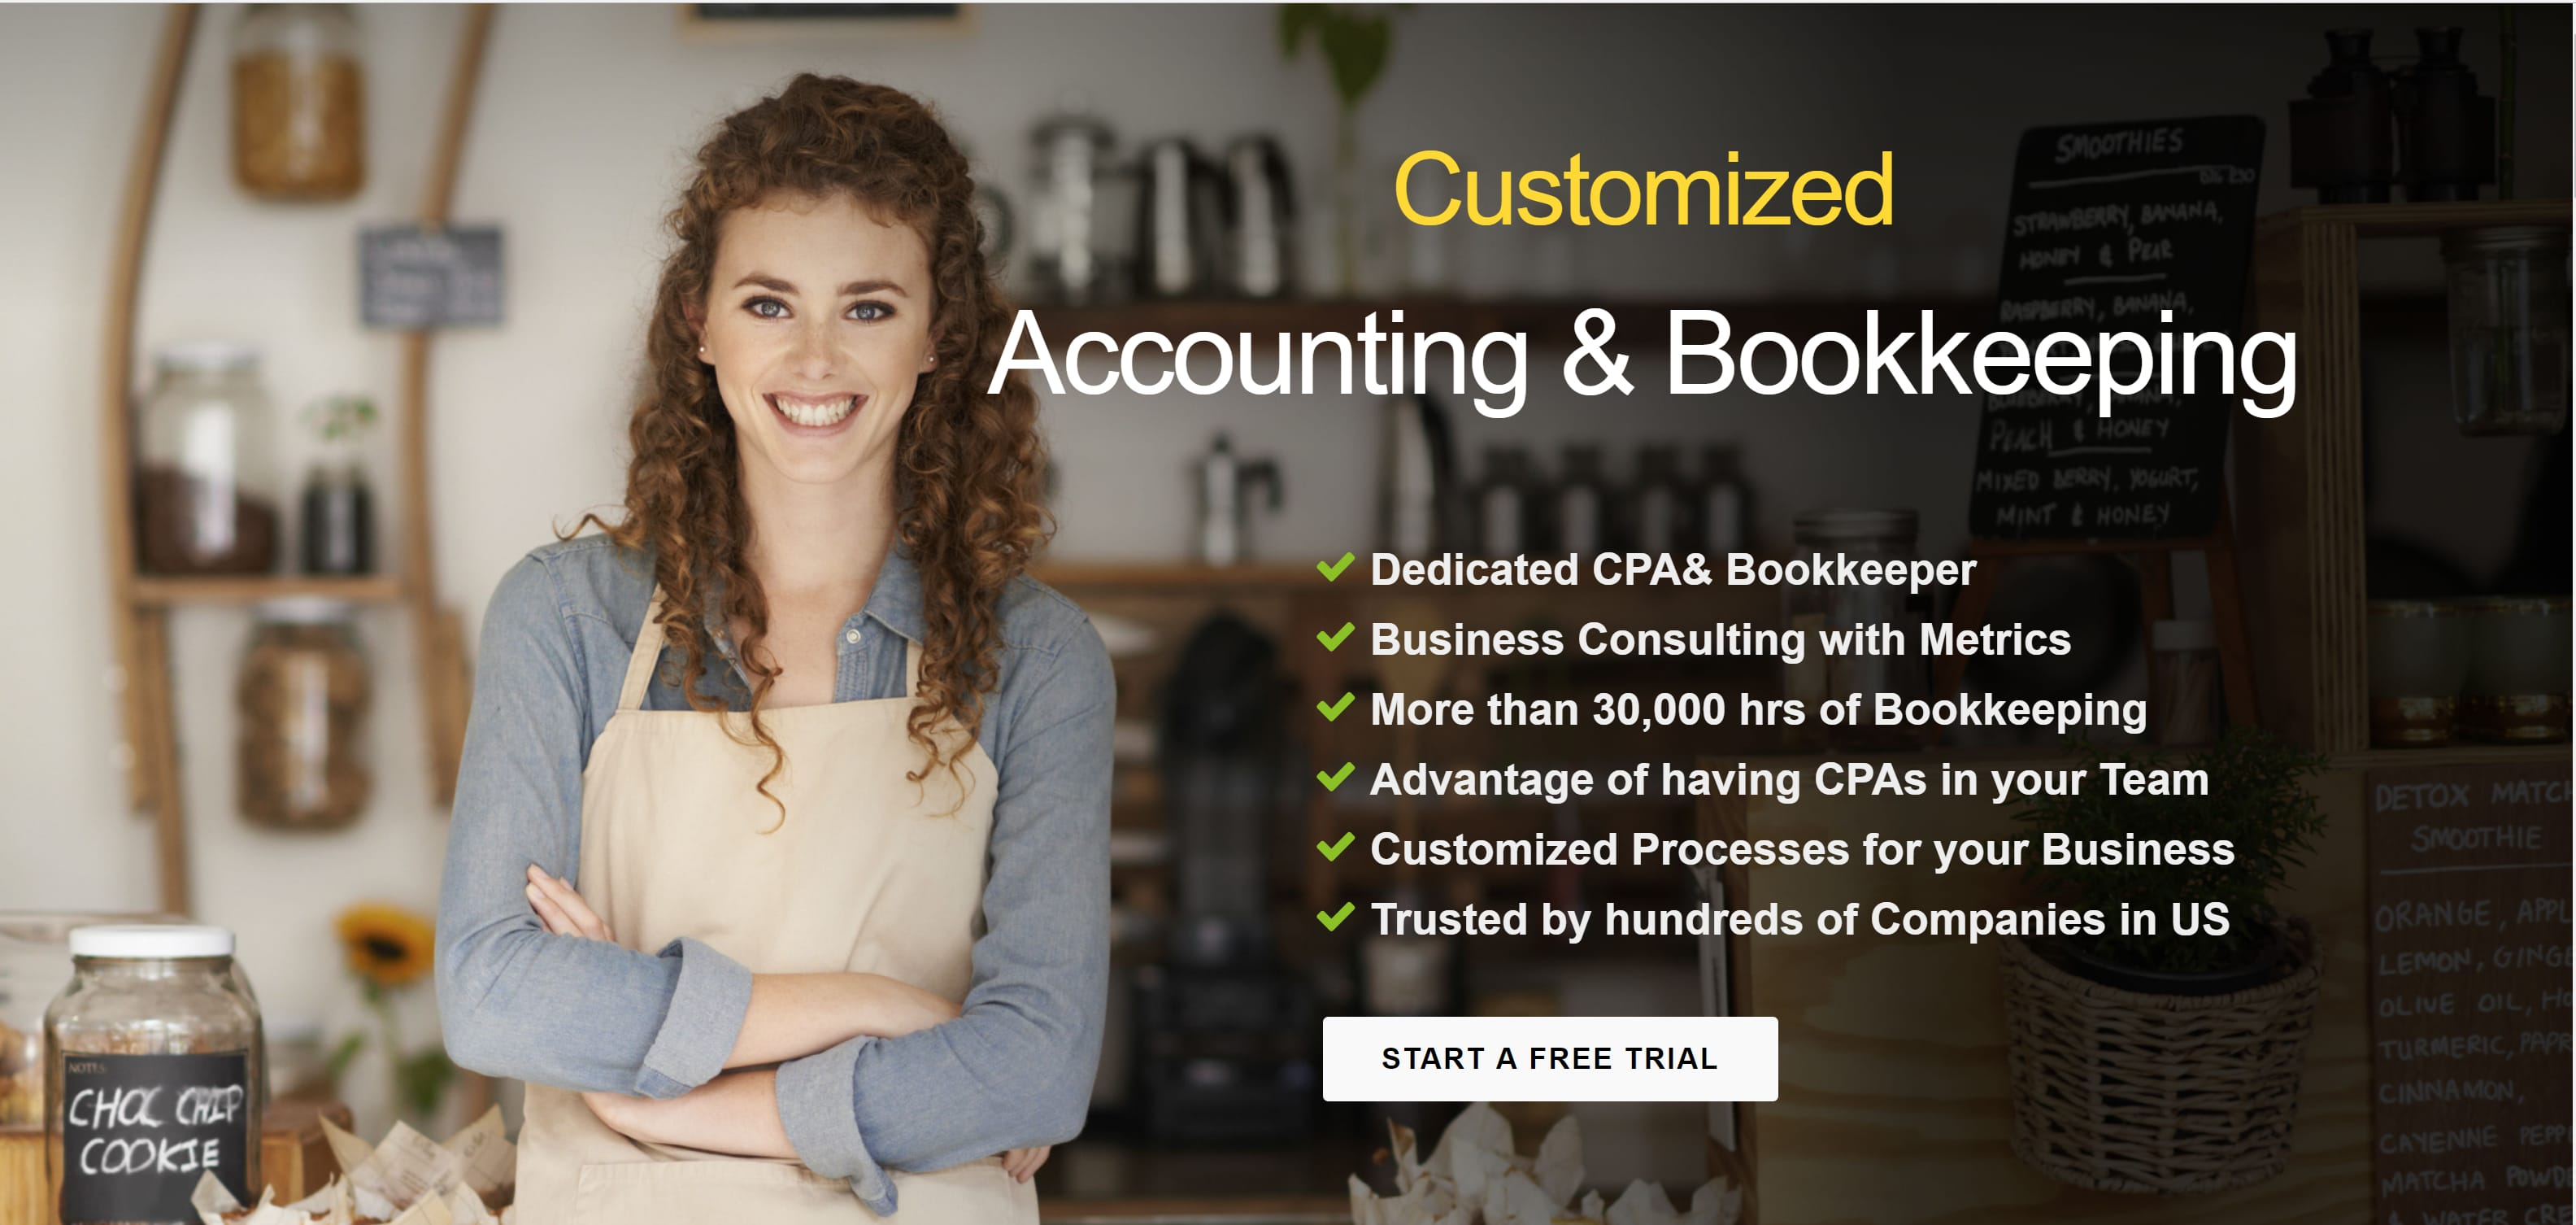 Accounting & Tax Outsourcing Firms | Bookkeeping & Taxation Services